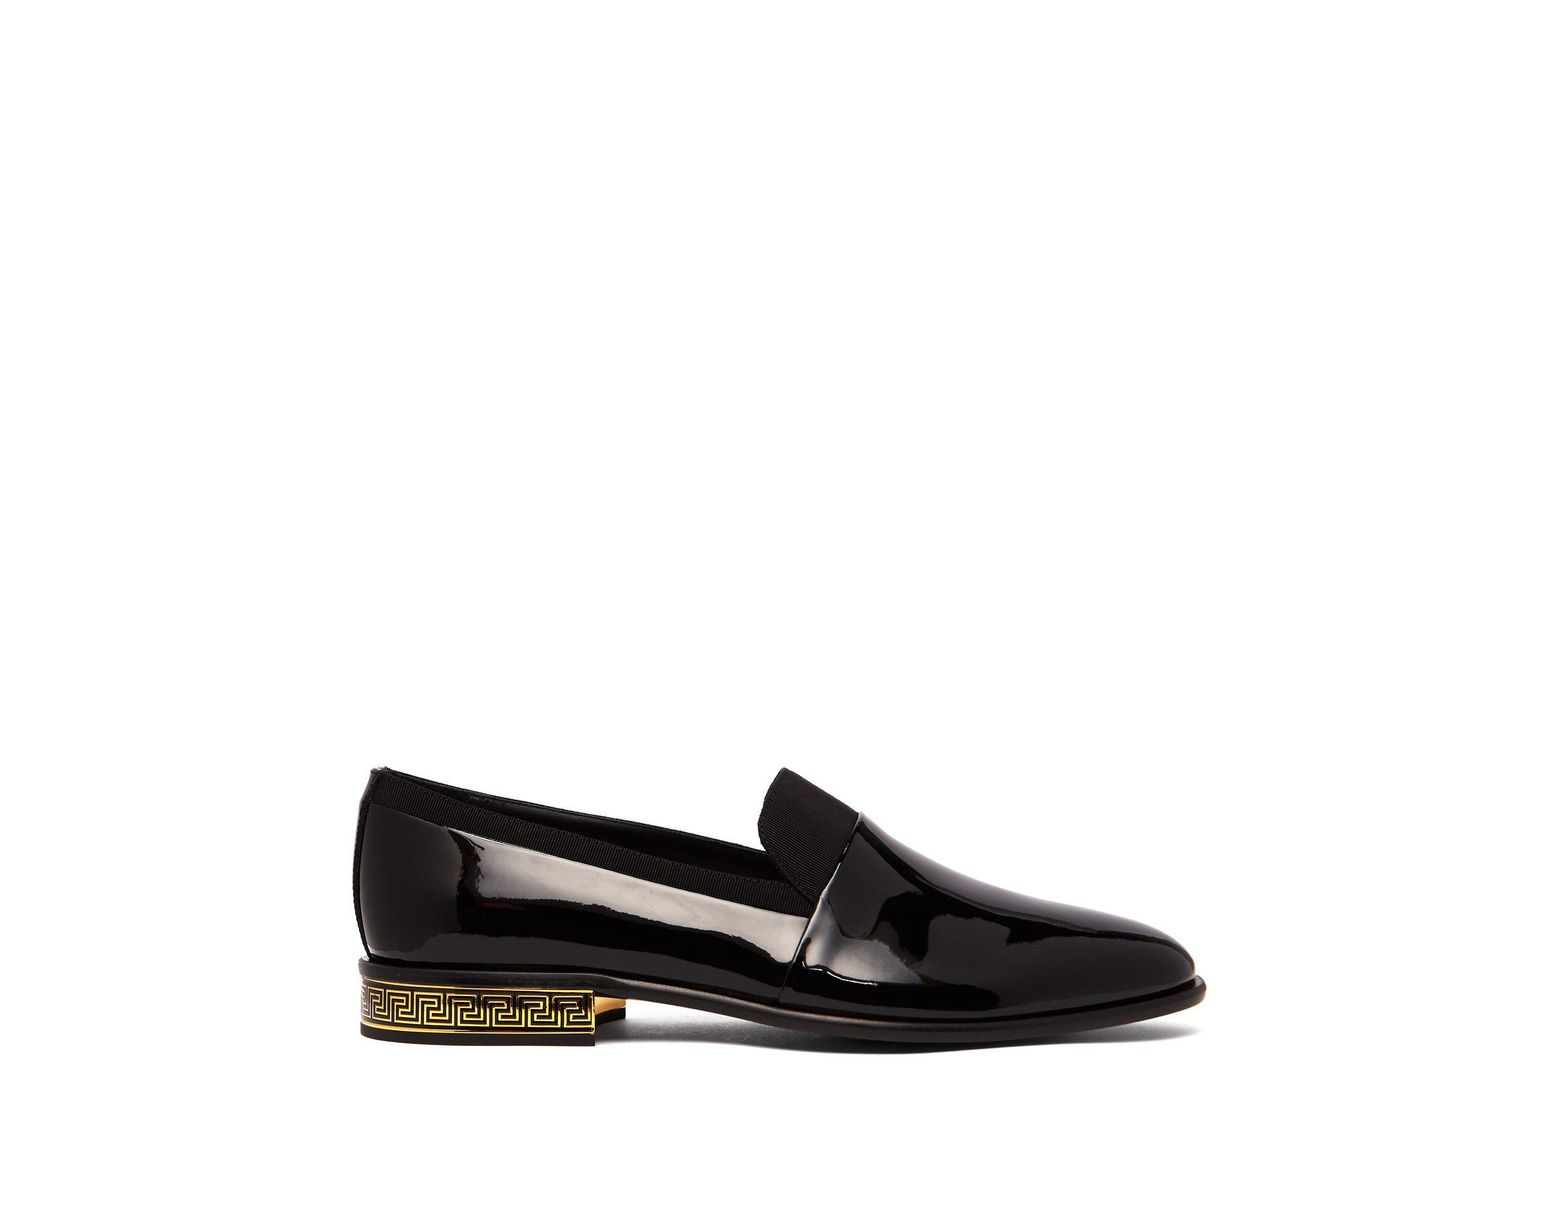 4728450c95 Versace Contrast Leather Loafers in Black for Men - Save 30% - Lyst